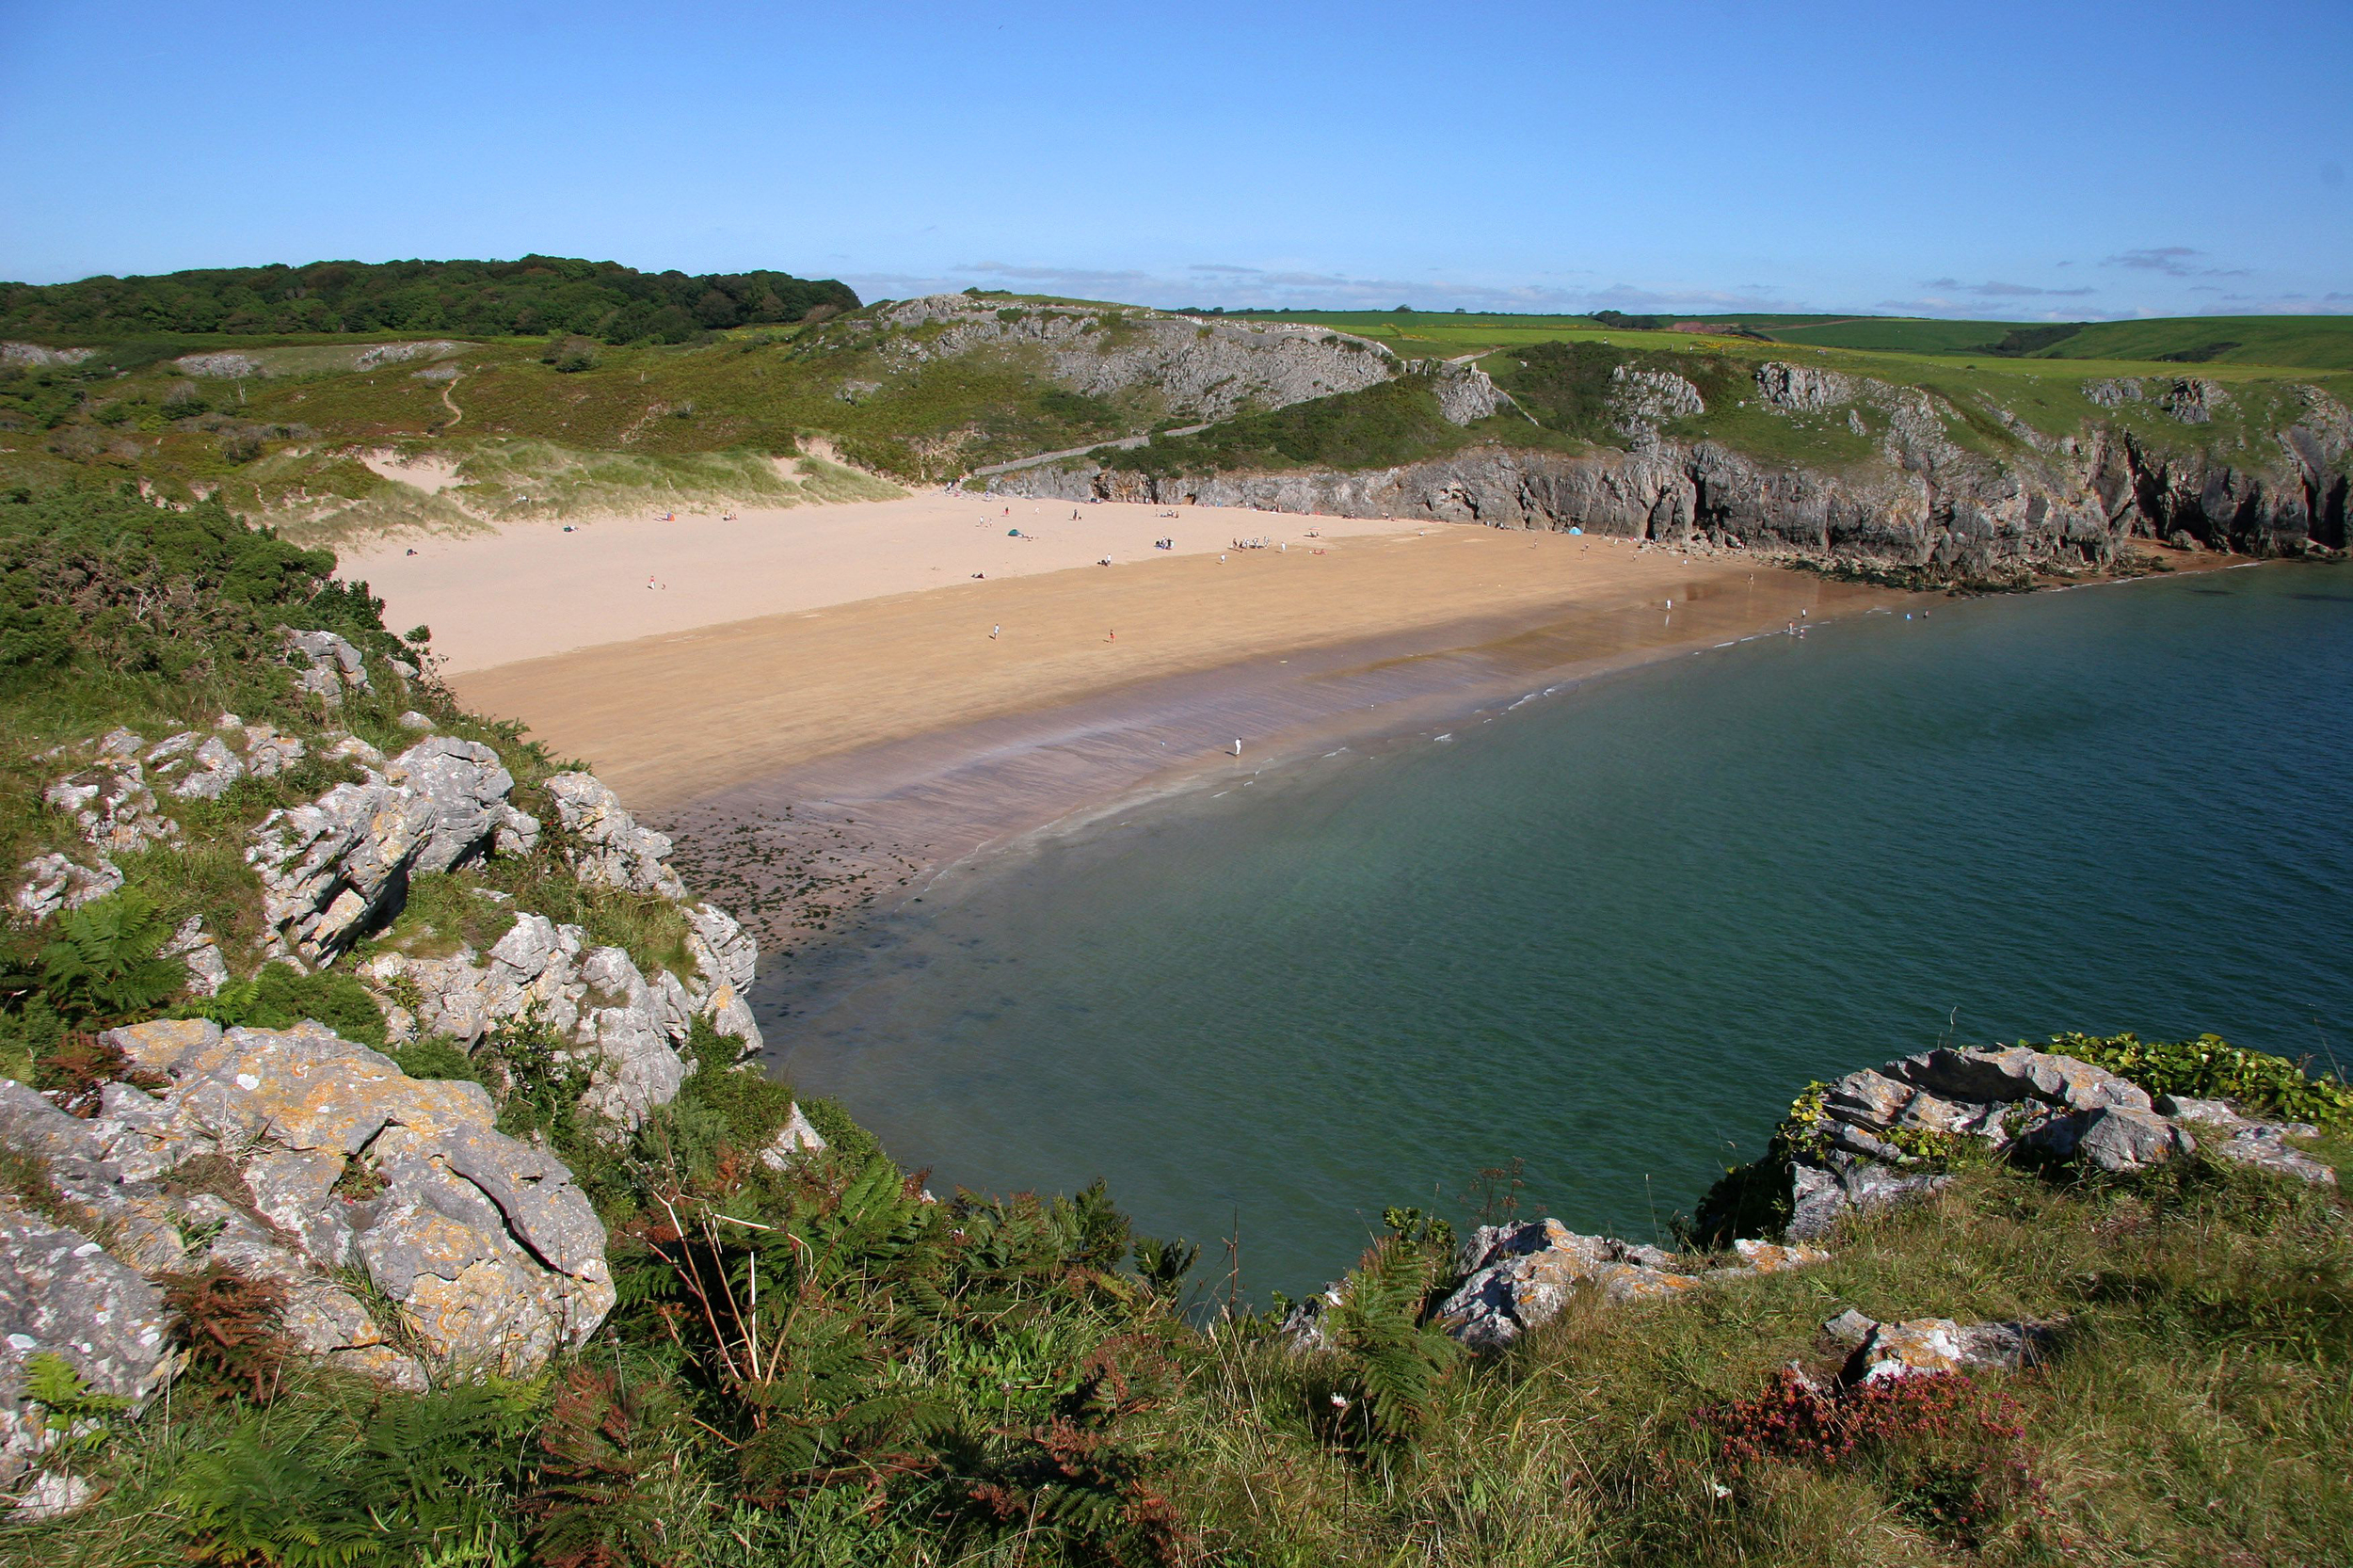 World 39 S Best Beaches Facebook Fans Nominate The Most Beautiful Beaches Pictures Aol Travel Uk